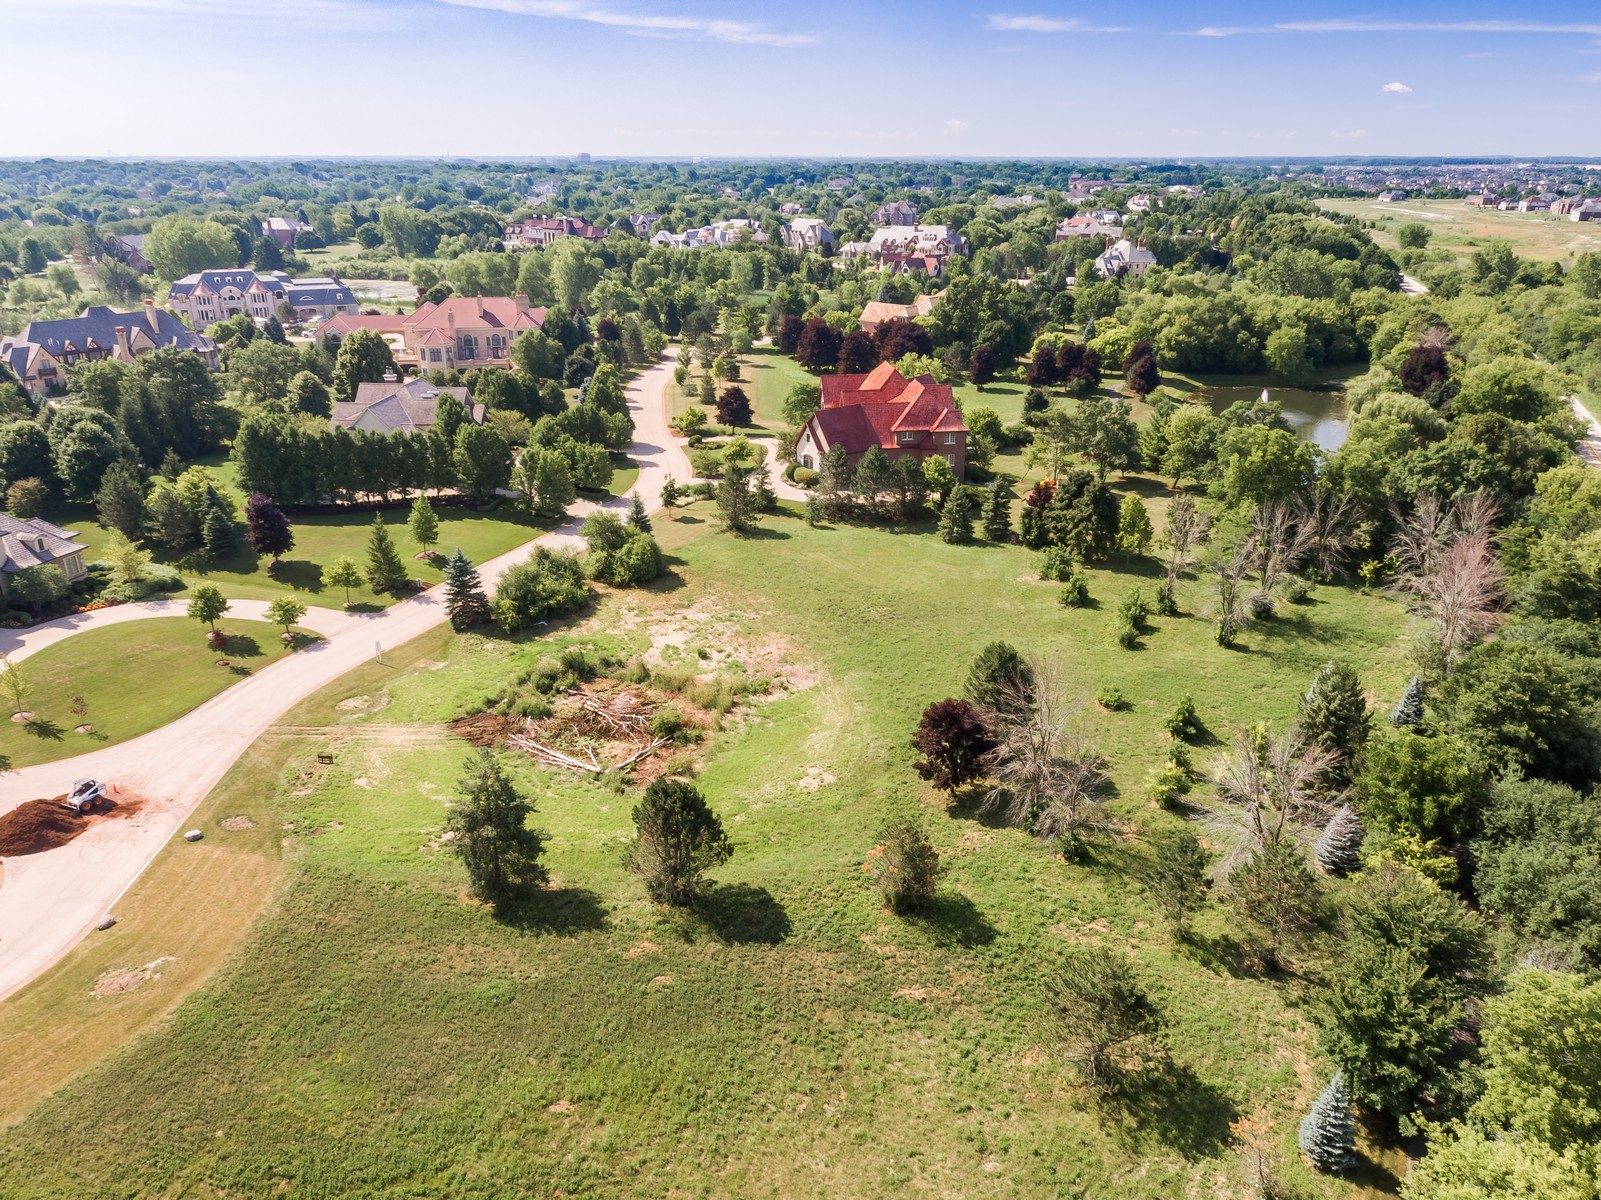 Земля для того Продажа на Incredible 1.3 Acre Estate Lot in Hidden Lakes 18 Brooke Lane Lot 32 South Barrington, Иллинойс, 60010 Соединенные Штаты